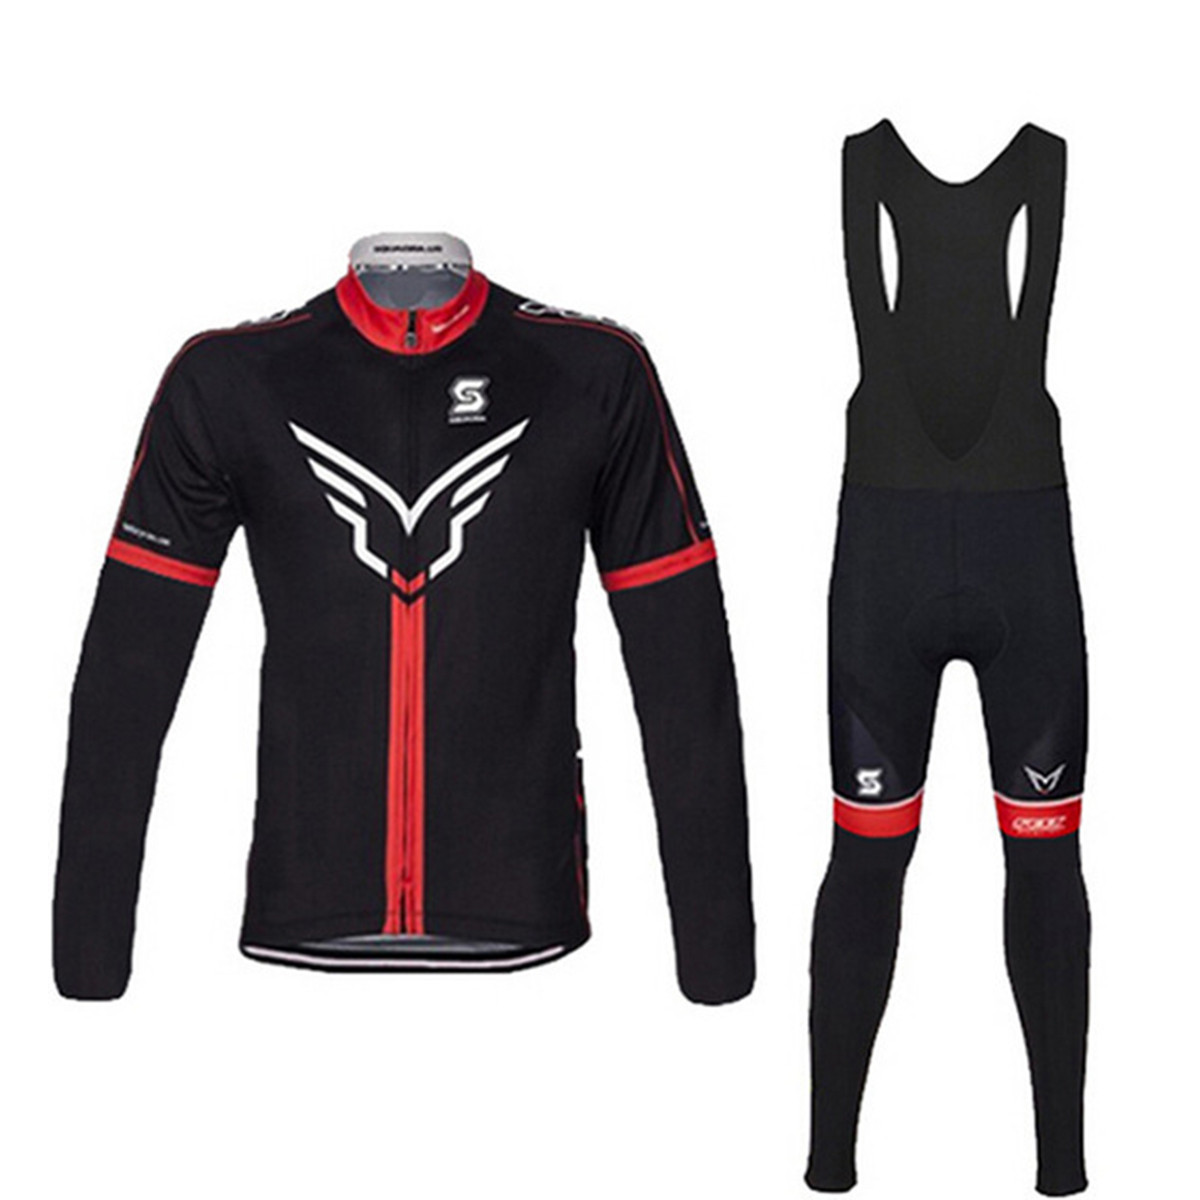 FELT Men`s Long Sleeve Breathable Team Cycling Bib Set Spring/Autumn Bike Pro Bike Clothes Ropa Maillot Ciclismo with 9D Gel Pad  2017 mavic maillot ciclismo zebra pattern men personality long sleeve cycling breathable bike bicycle clothes polyester s 6xl